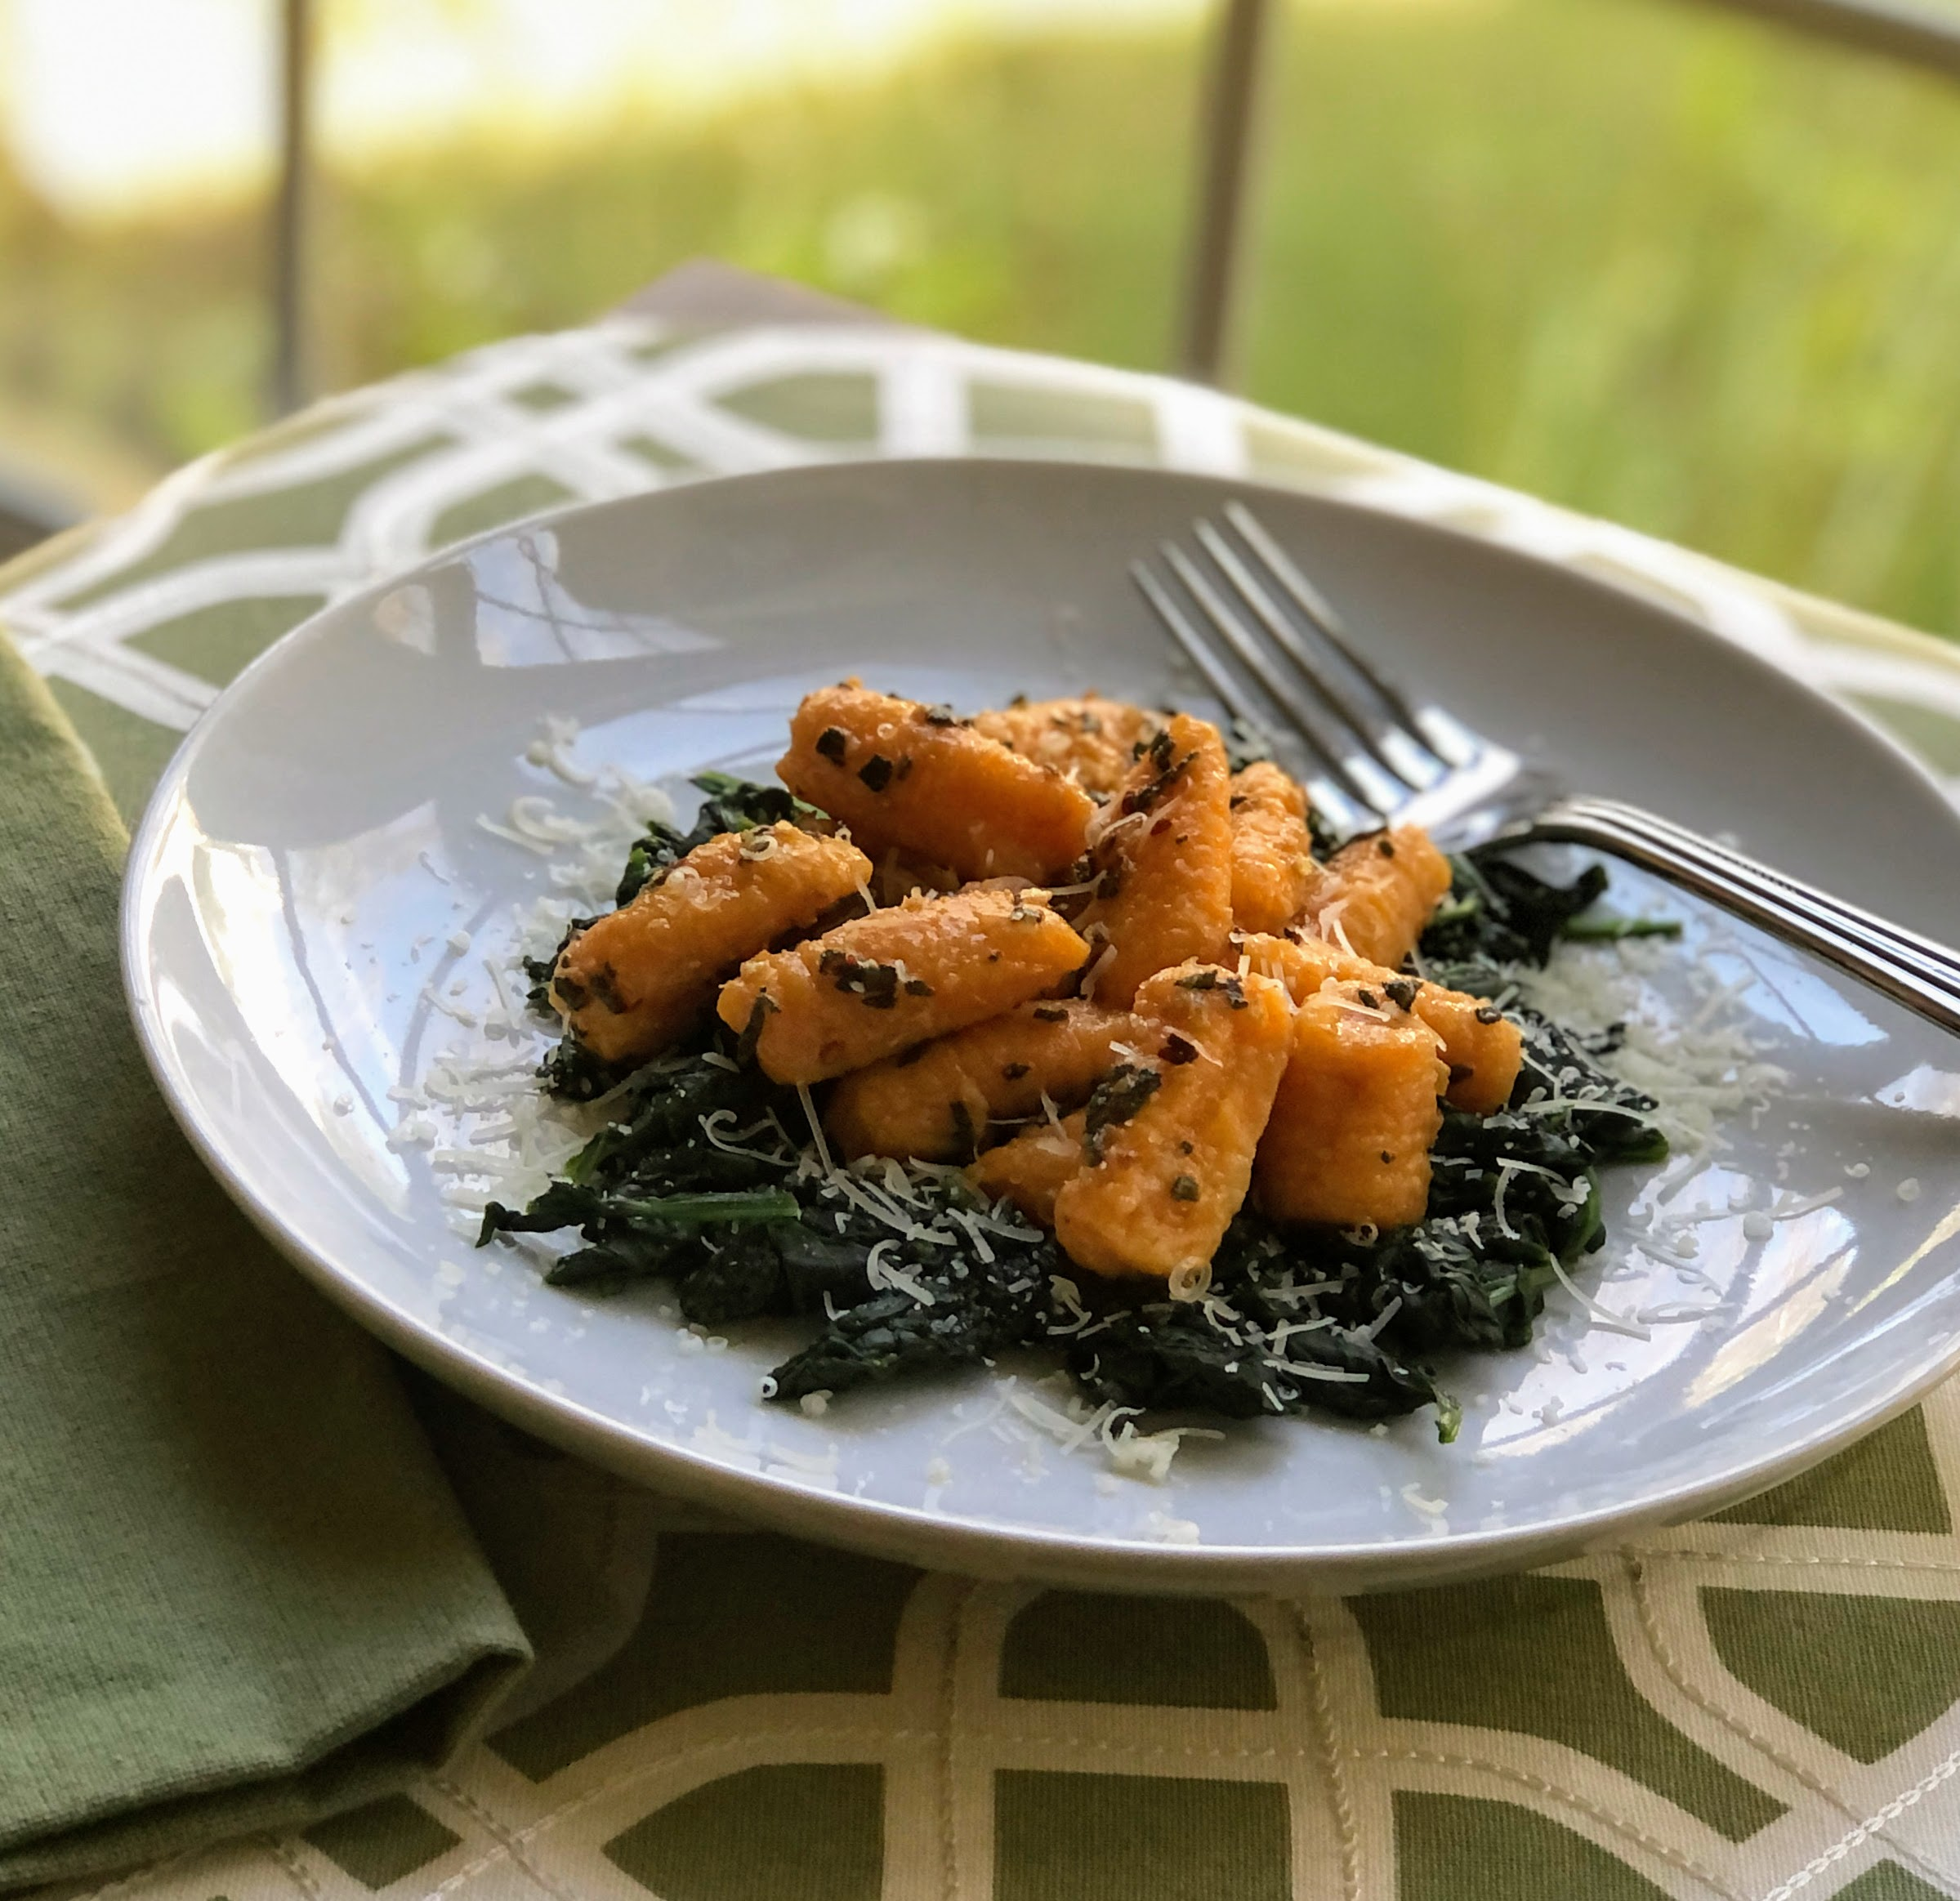 Butternut Squash Gnocchi with Garlic-Sage Butter over Wilted Spinach